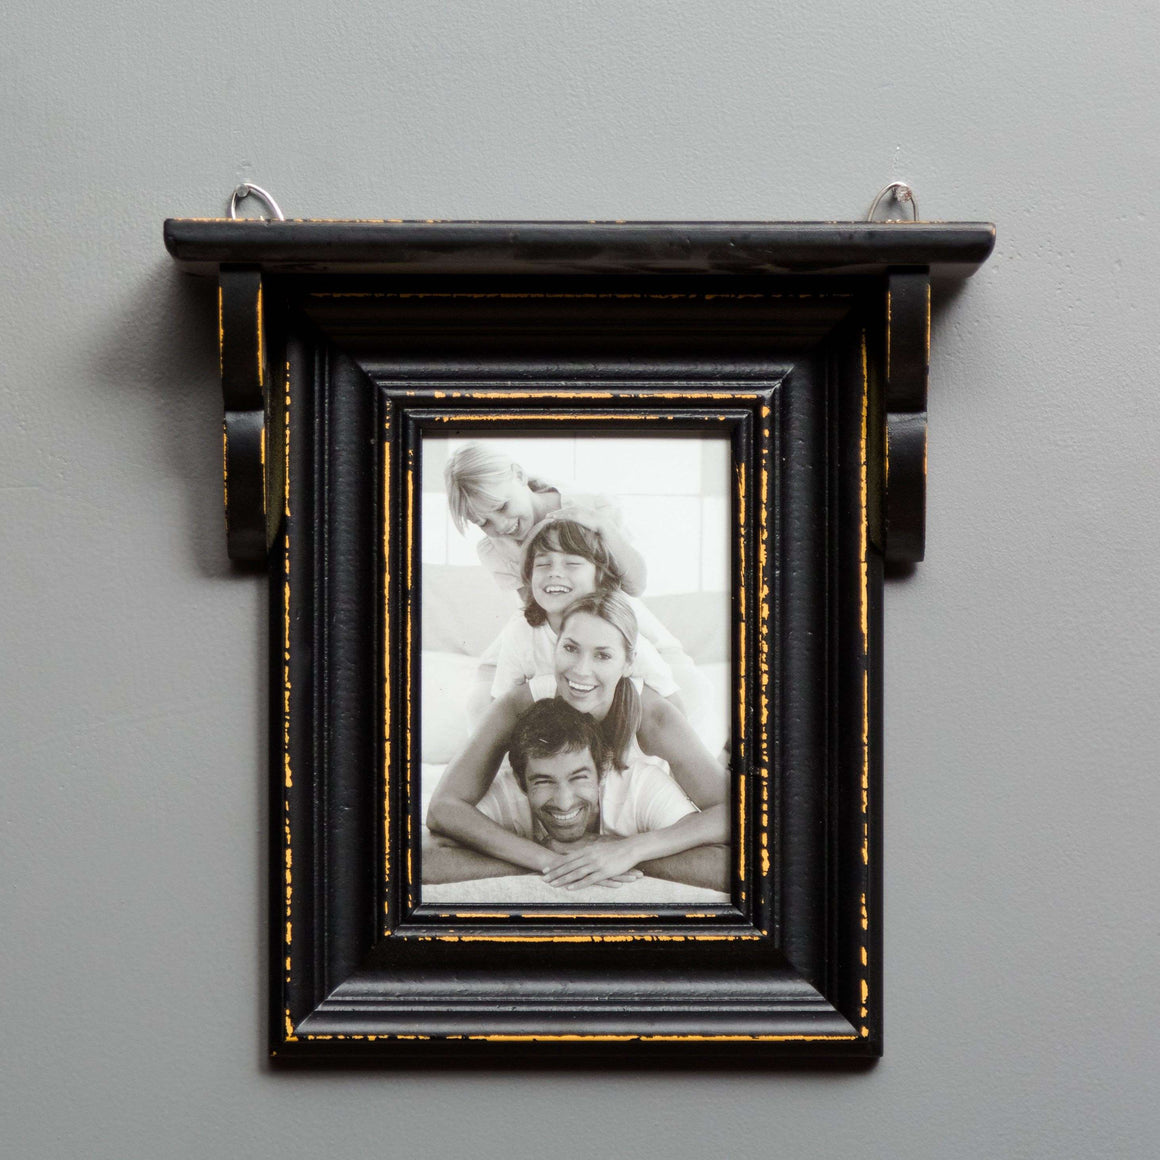 Distressed Black Shelf with Single Photo Frame